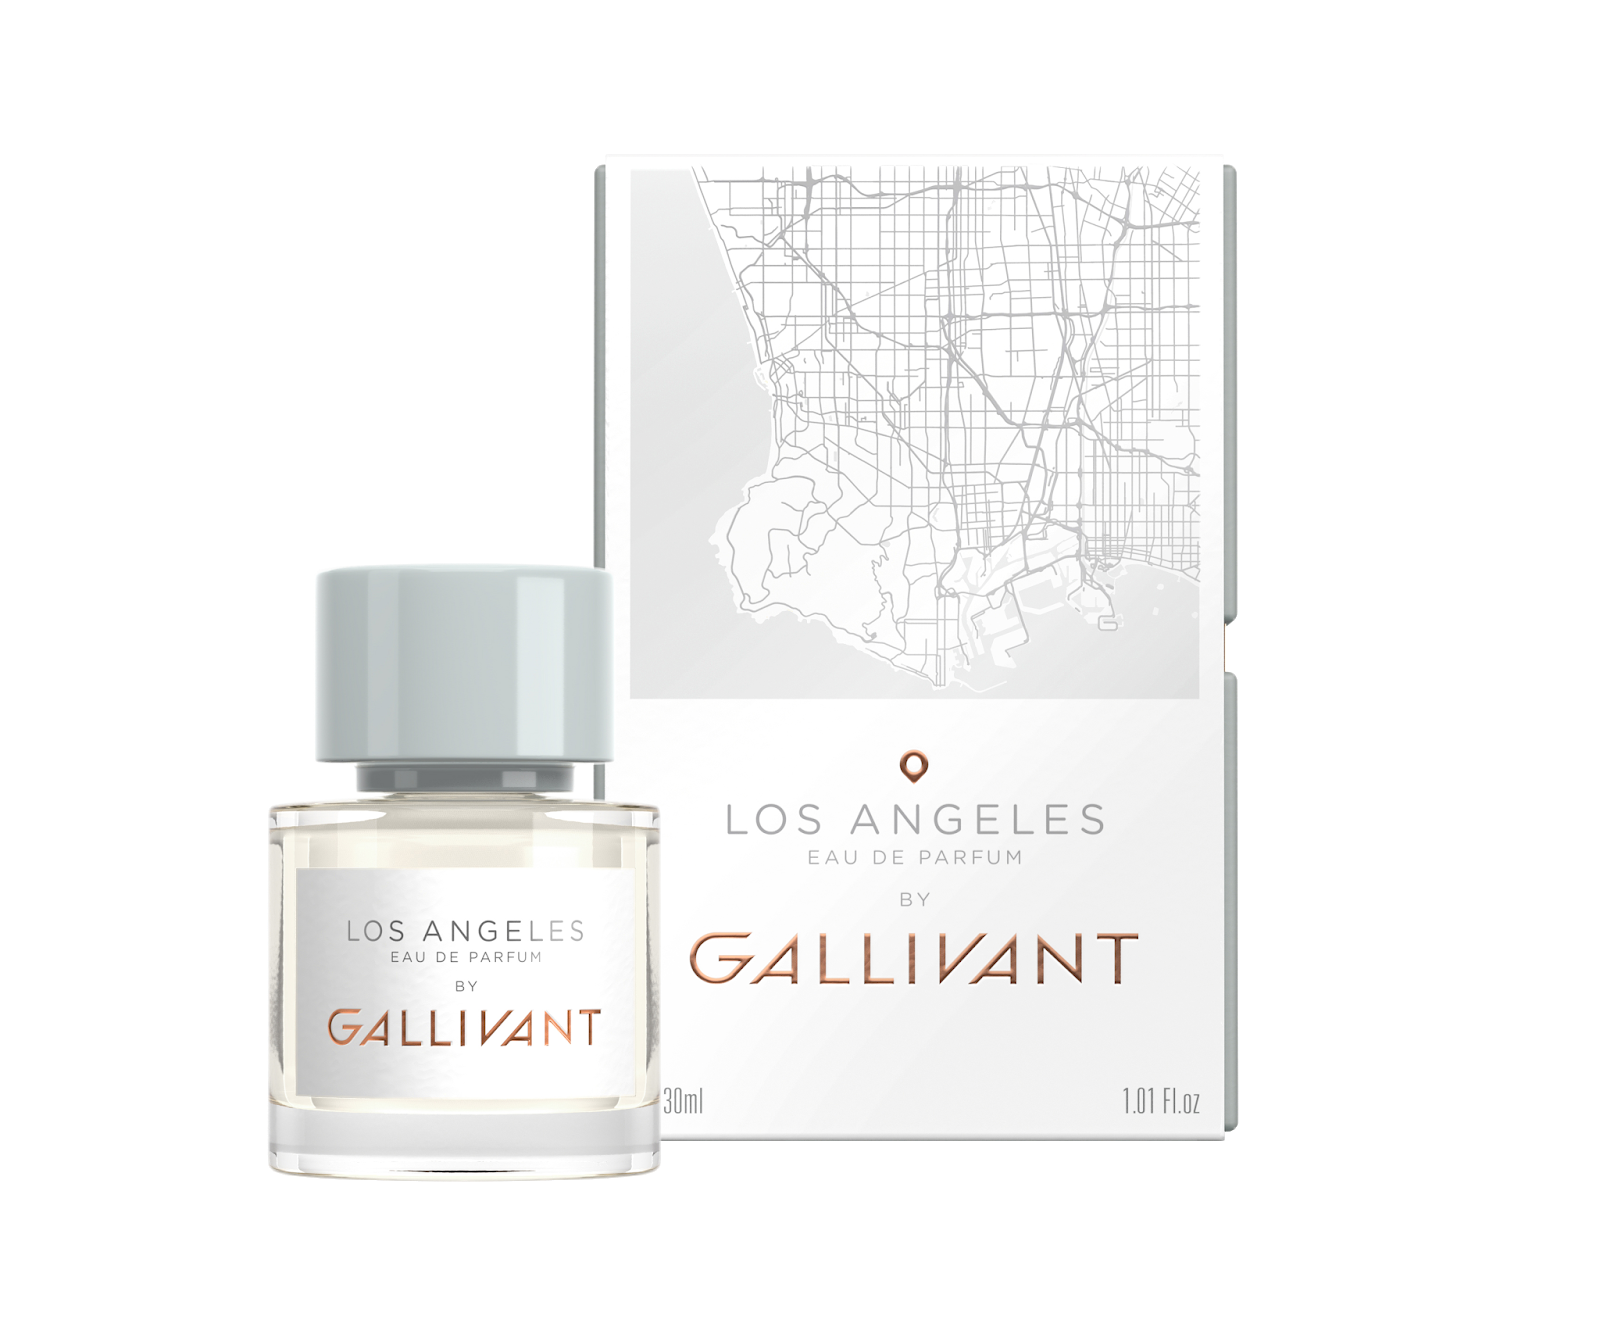 Los Angeles by Gallivant